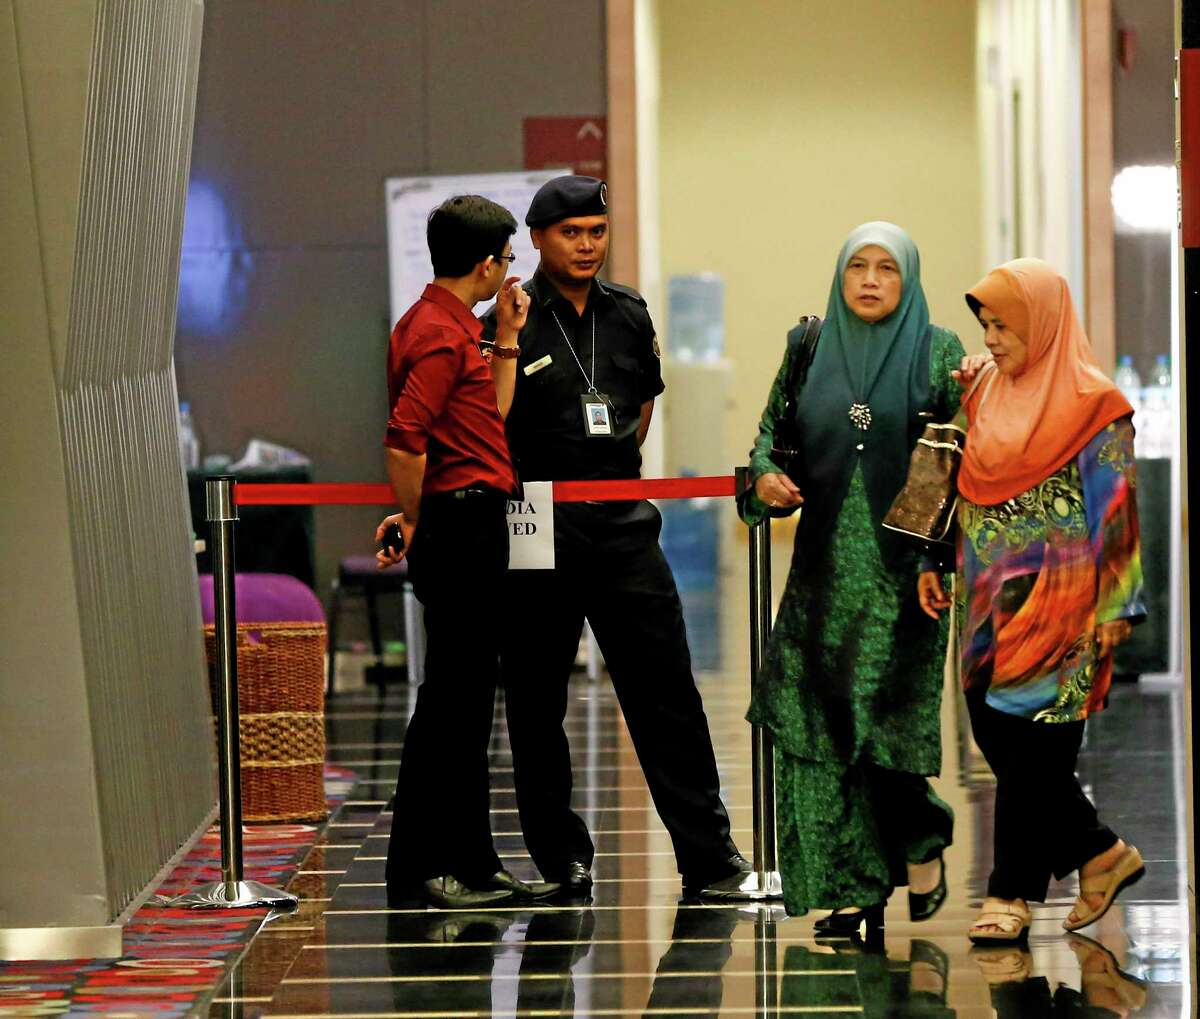 """Family members of passengers aboard a missing Malaysia Airlines plane walk out from a holding room as police stand guard at a hotel in Putrajaya, Malaysia, Thursday, March 20, 2014. An air search in the southern Indian Ocean for possible objects from the missing Malaysia Airlines plane described as the """"best lead"""" so far ended for the day without success Thursday but will resume in the morning, Australian rescue officials said. AP Photo/Vincent Thian"""